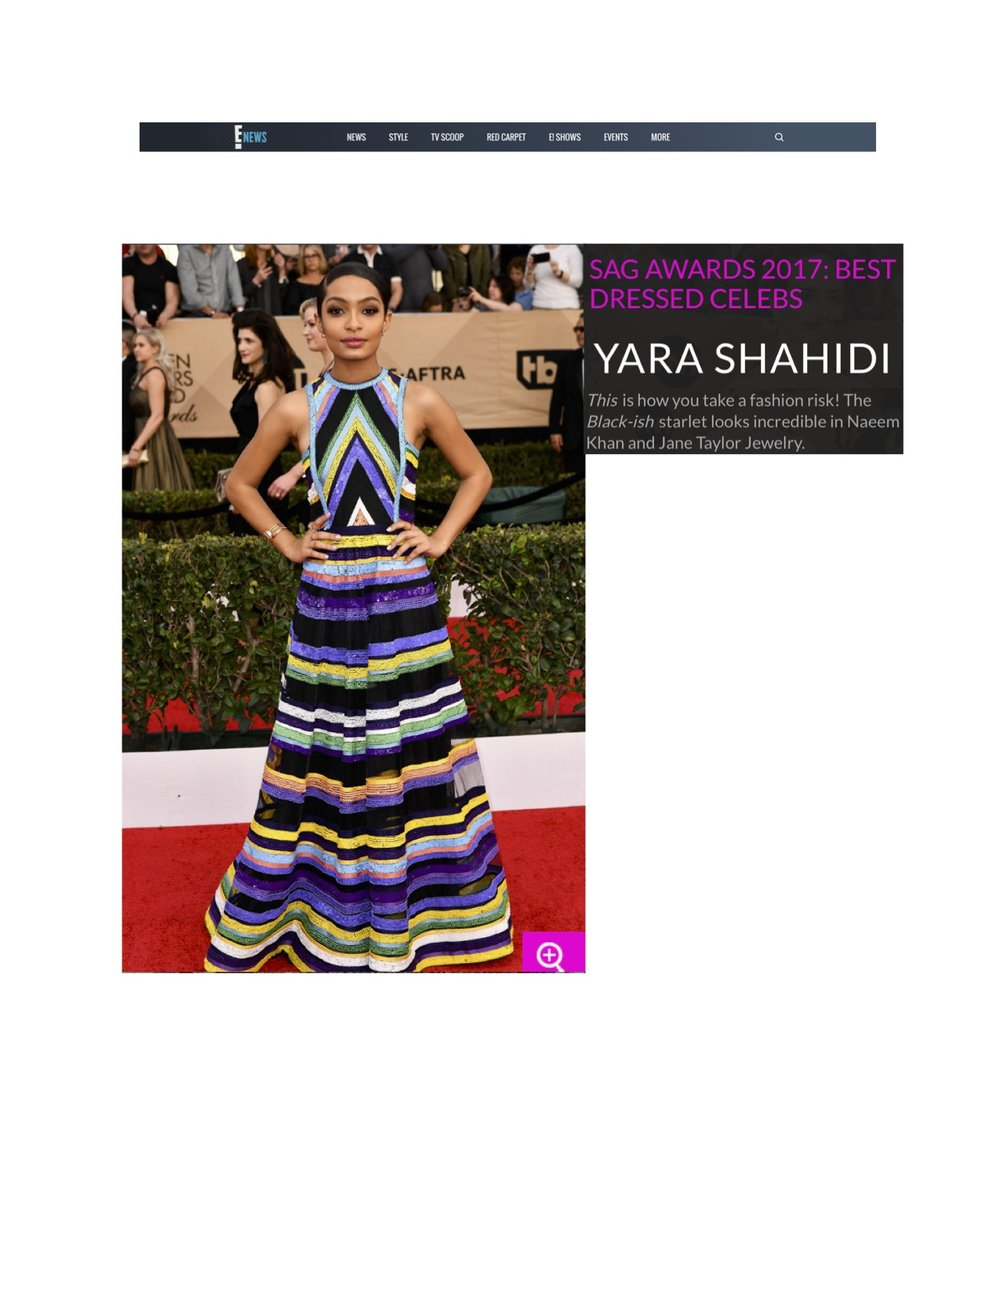 Yara Shahidi in Jane Taylor Earrings, Rings, and Bracelet at the 2017 SAG Awards - EOnline.com